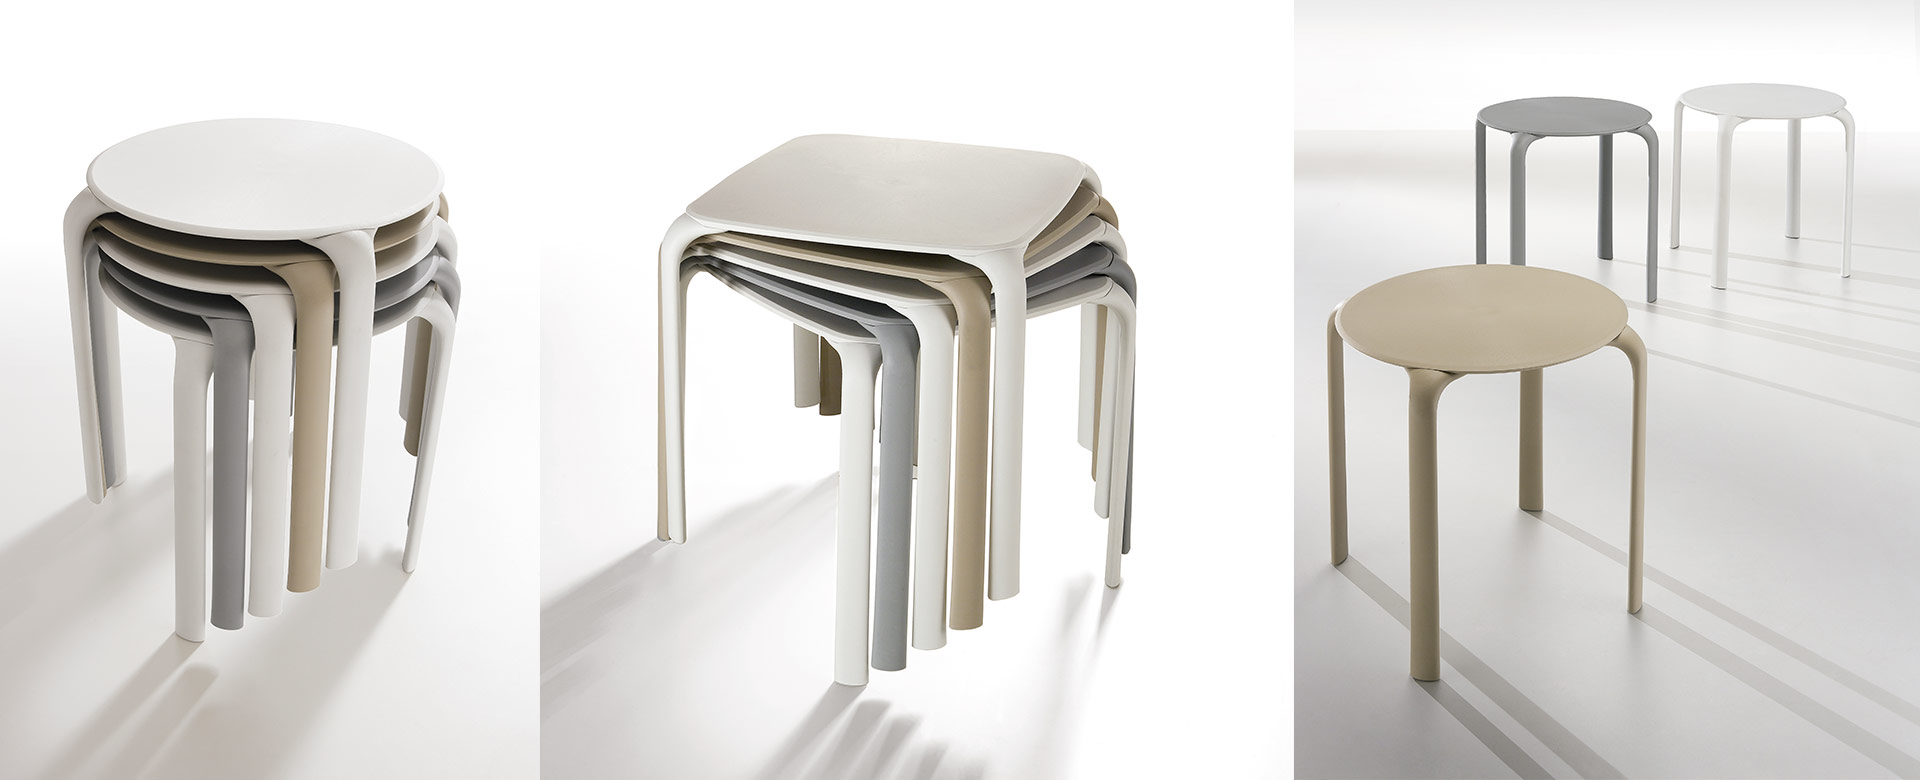 STILLA Outdoor Tables